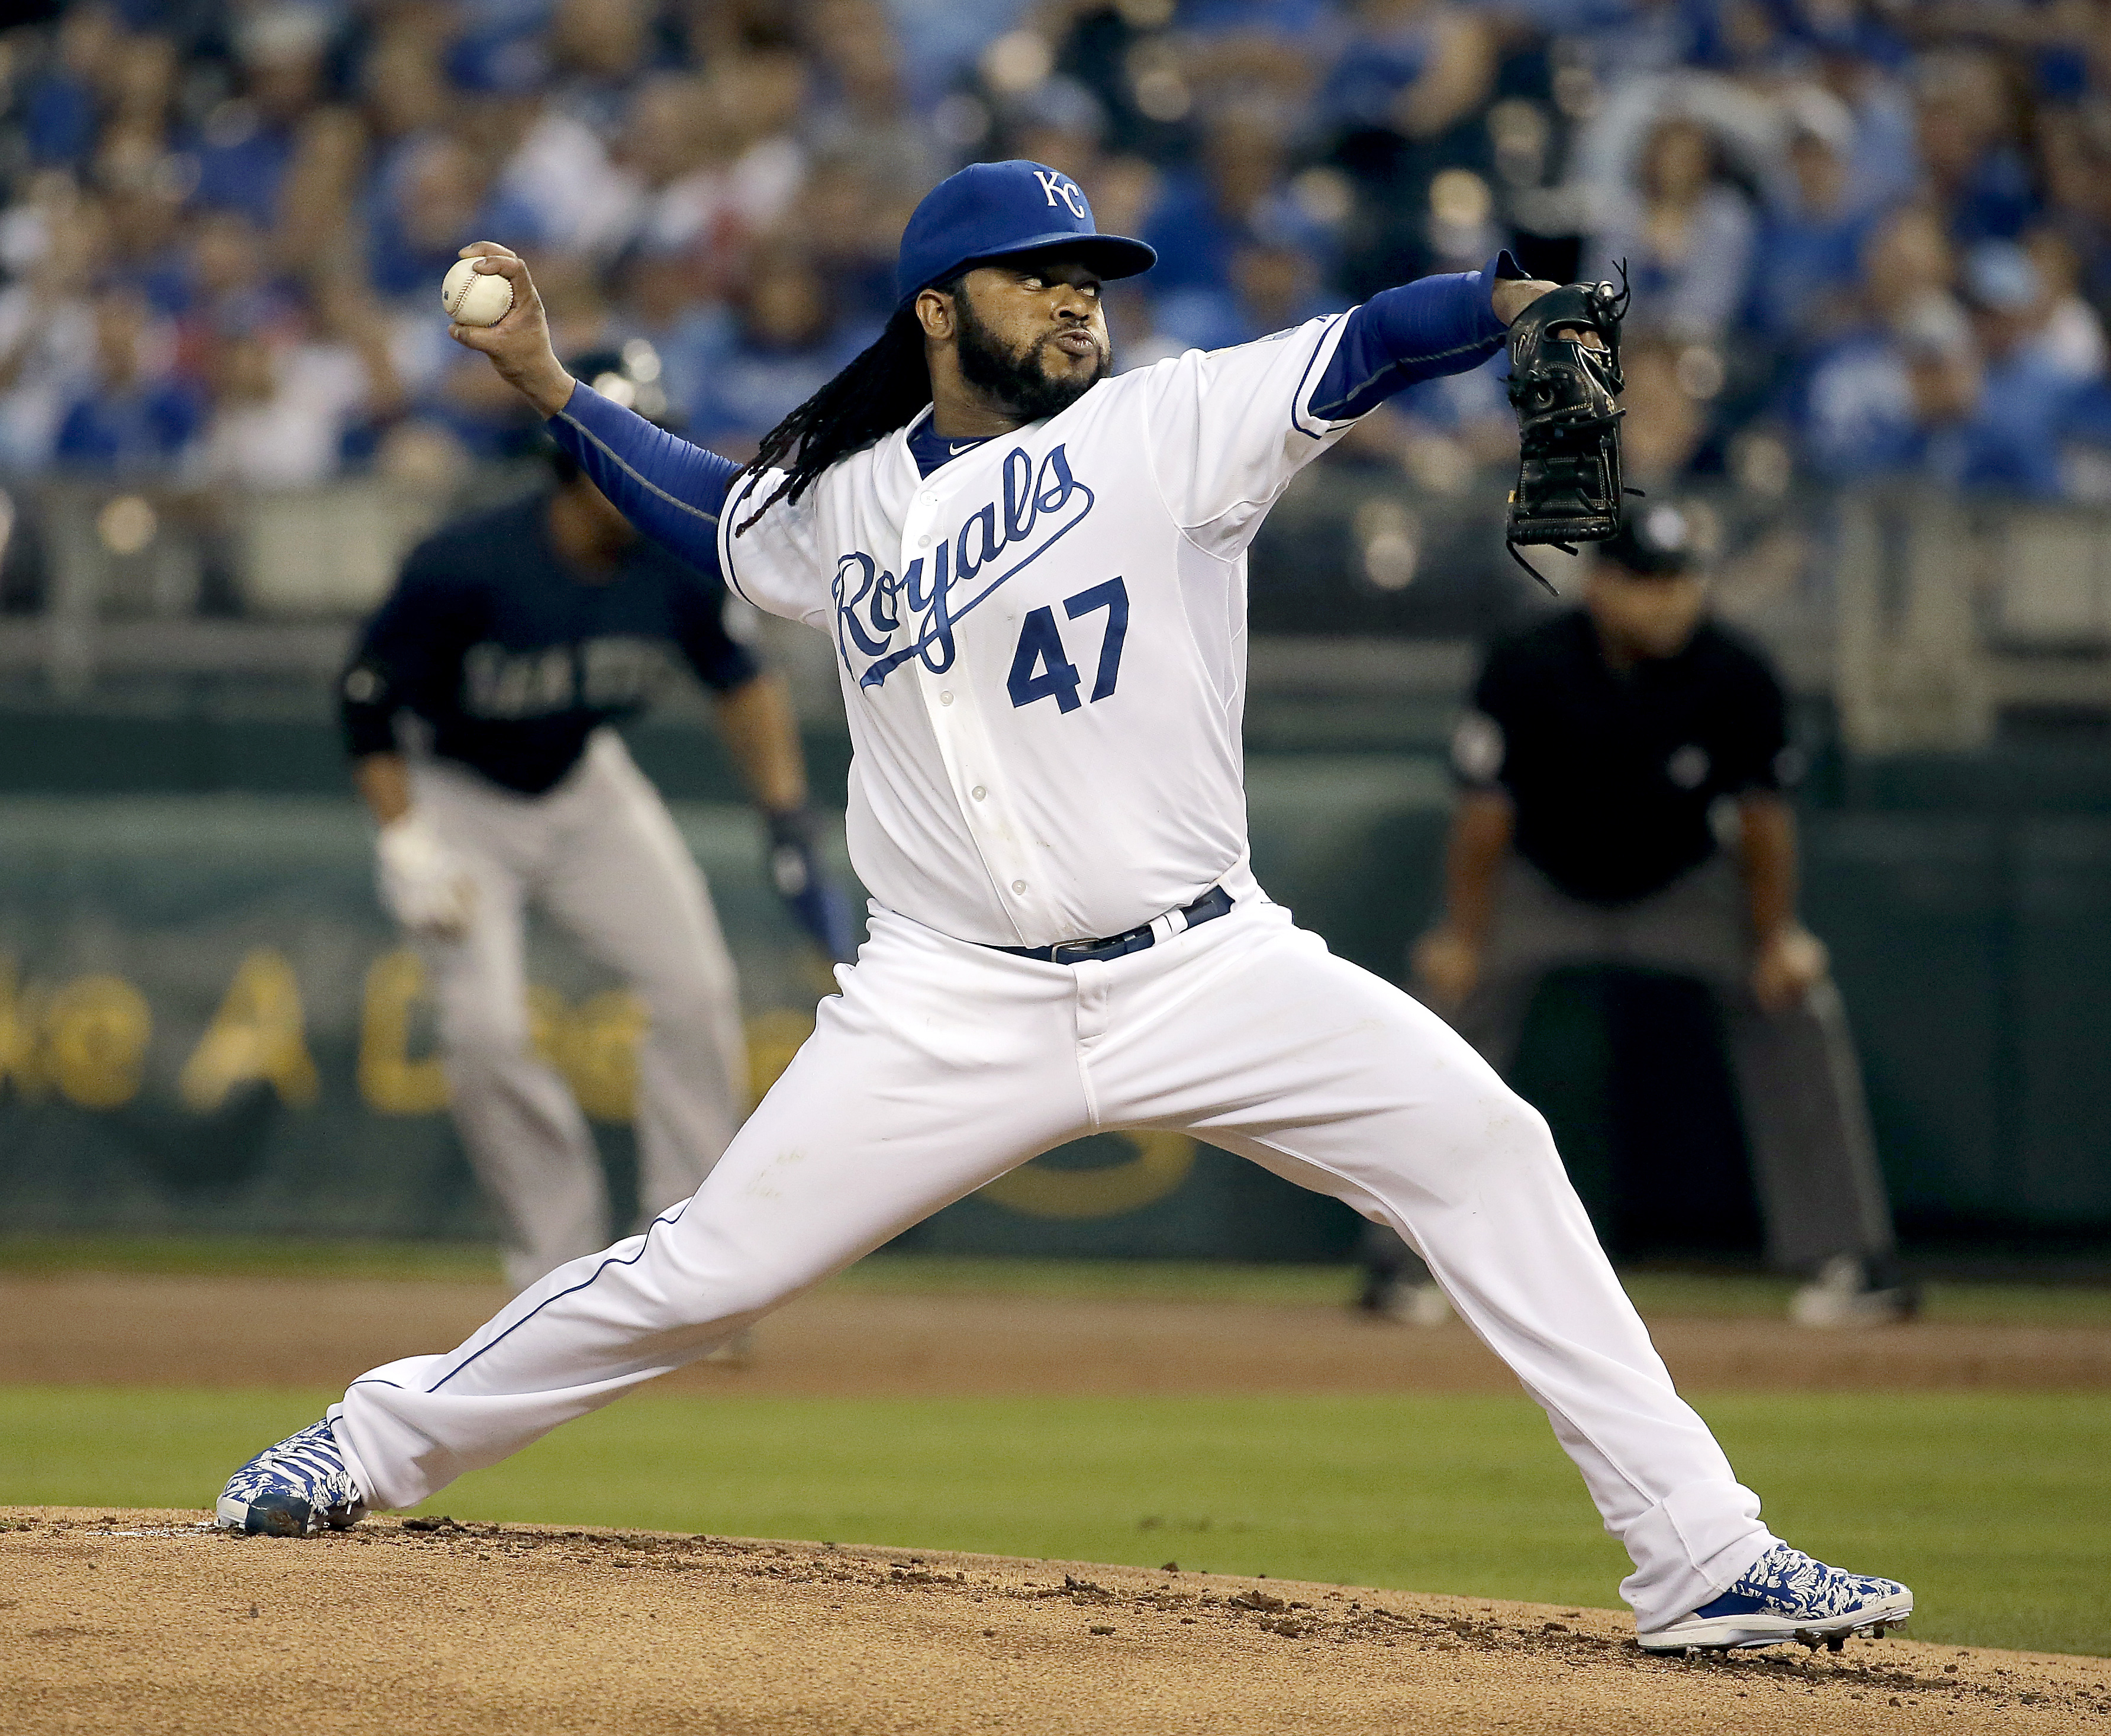 Kansas City Royals starting pitcher Johnny Cueto throws during the first inning of a baseball game against the Seattle Mariners on Thursday, Sept. 24, 2015, in Kansas City, Mo. (AP Photo/Charlie Riedel)